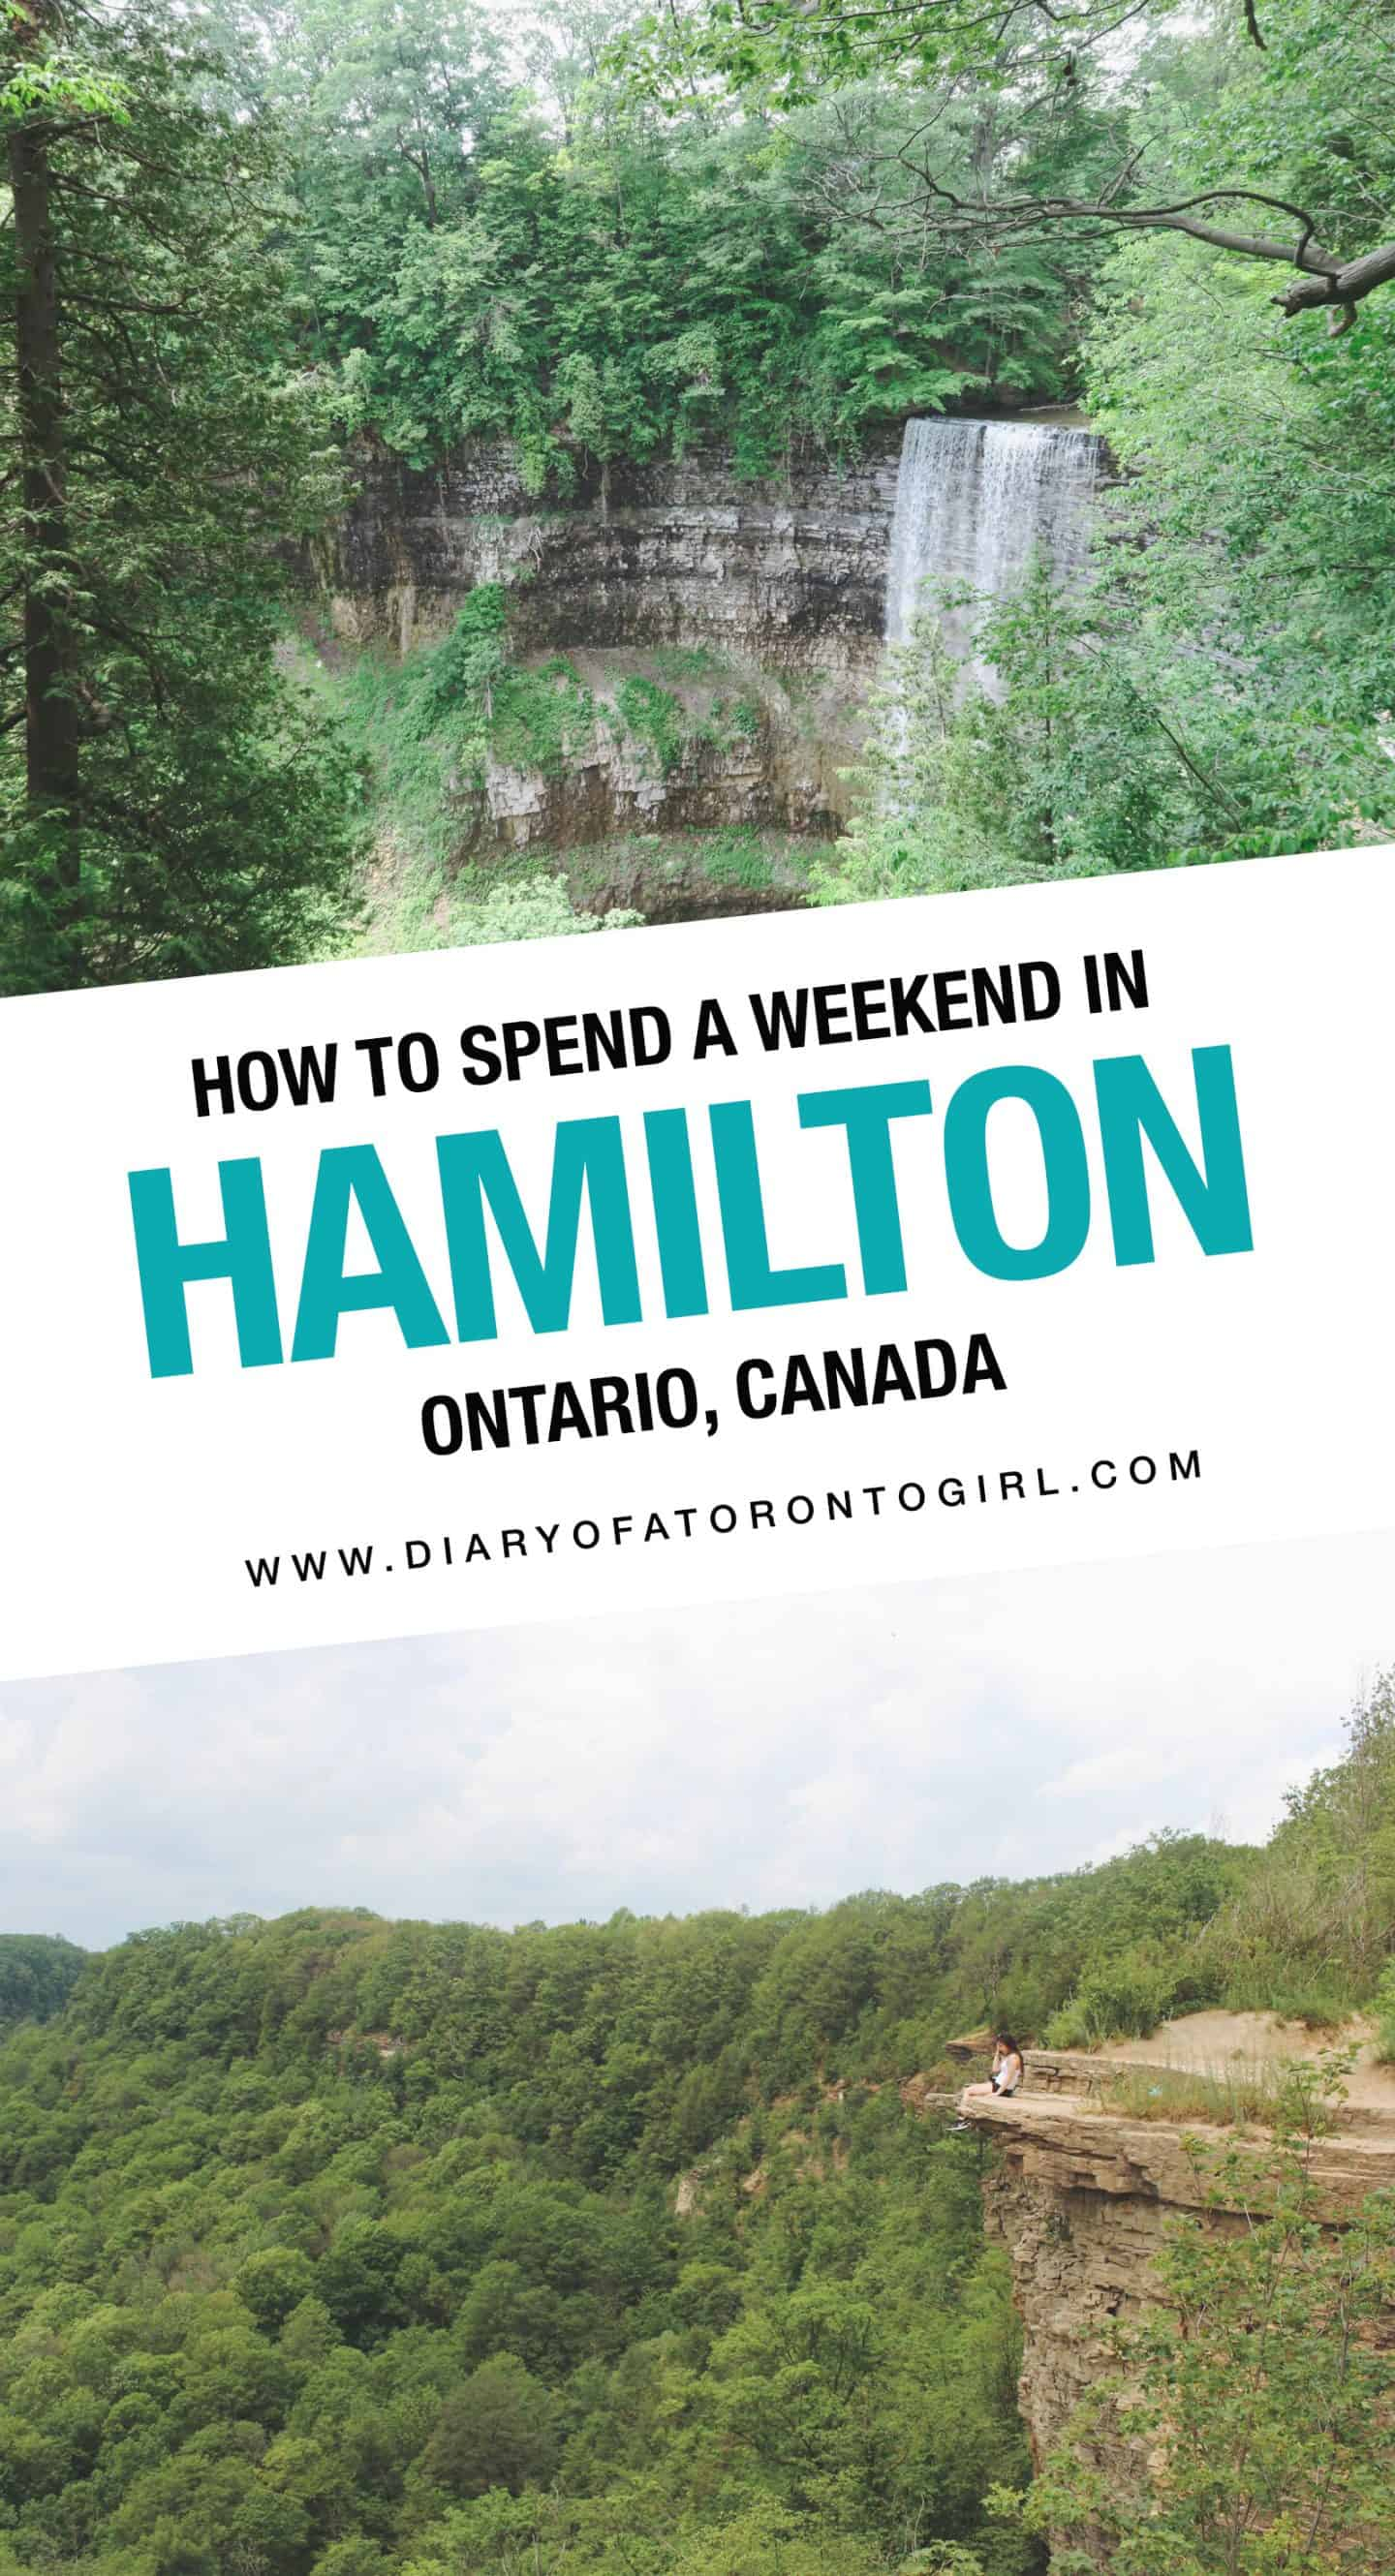 Planning a road trip to Hamilton? Here's how to spend the perfect summer weekend exploring waterfalls and restaurants in Hamilton, Ontario!